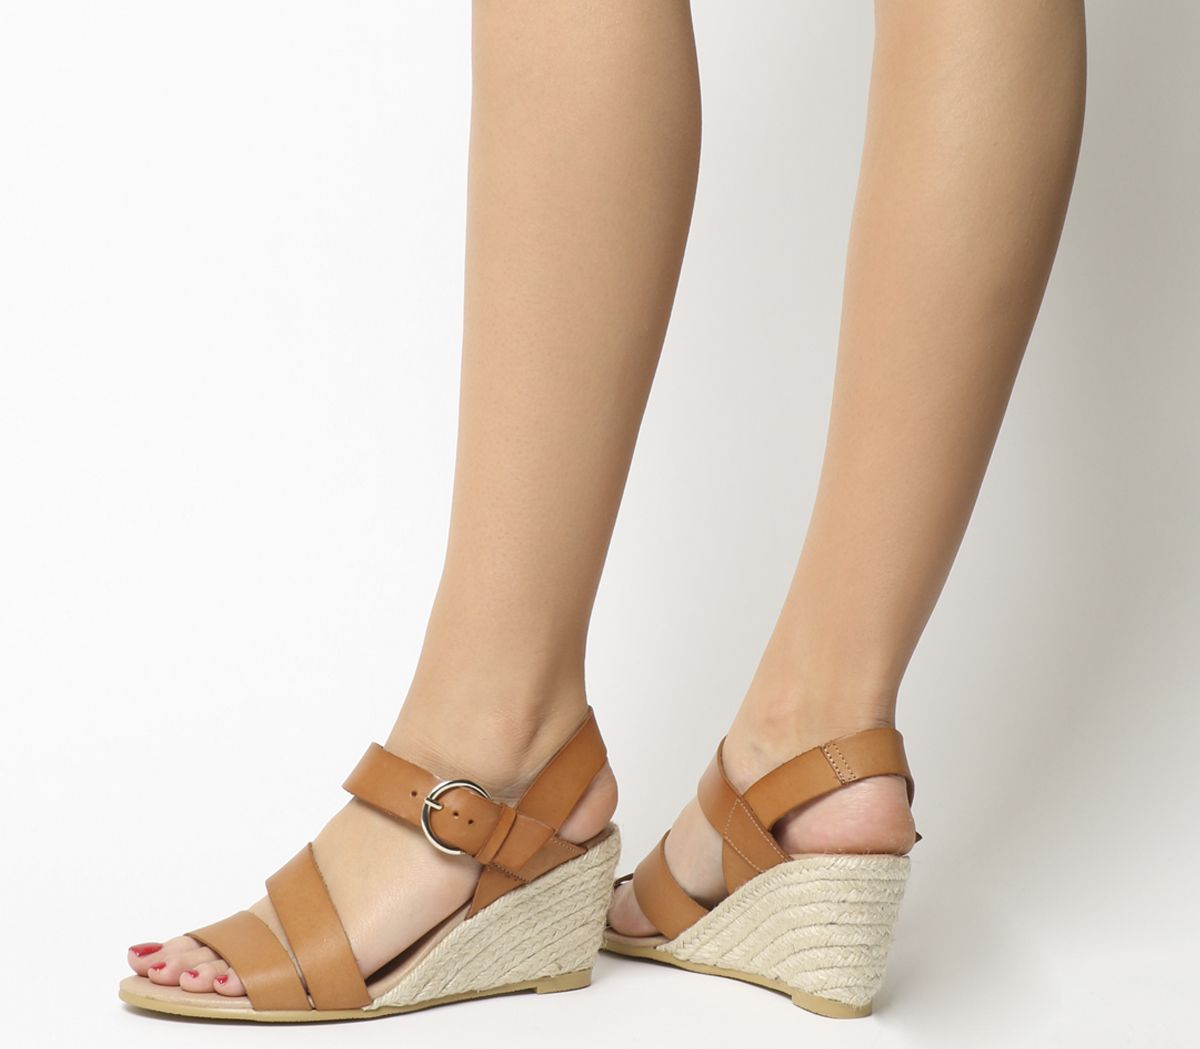 dde0f732a Office Mangoes Espadrille Wedges Tan Leather - Mid Heels